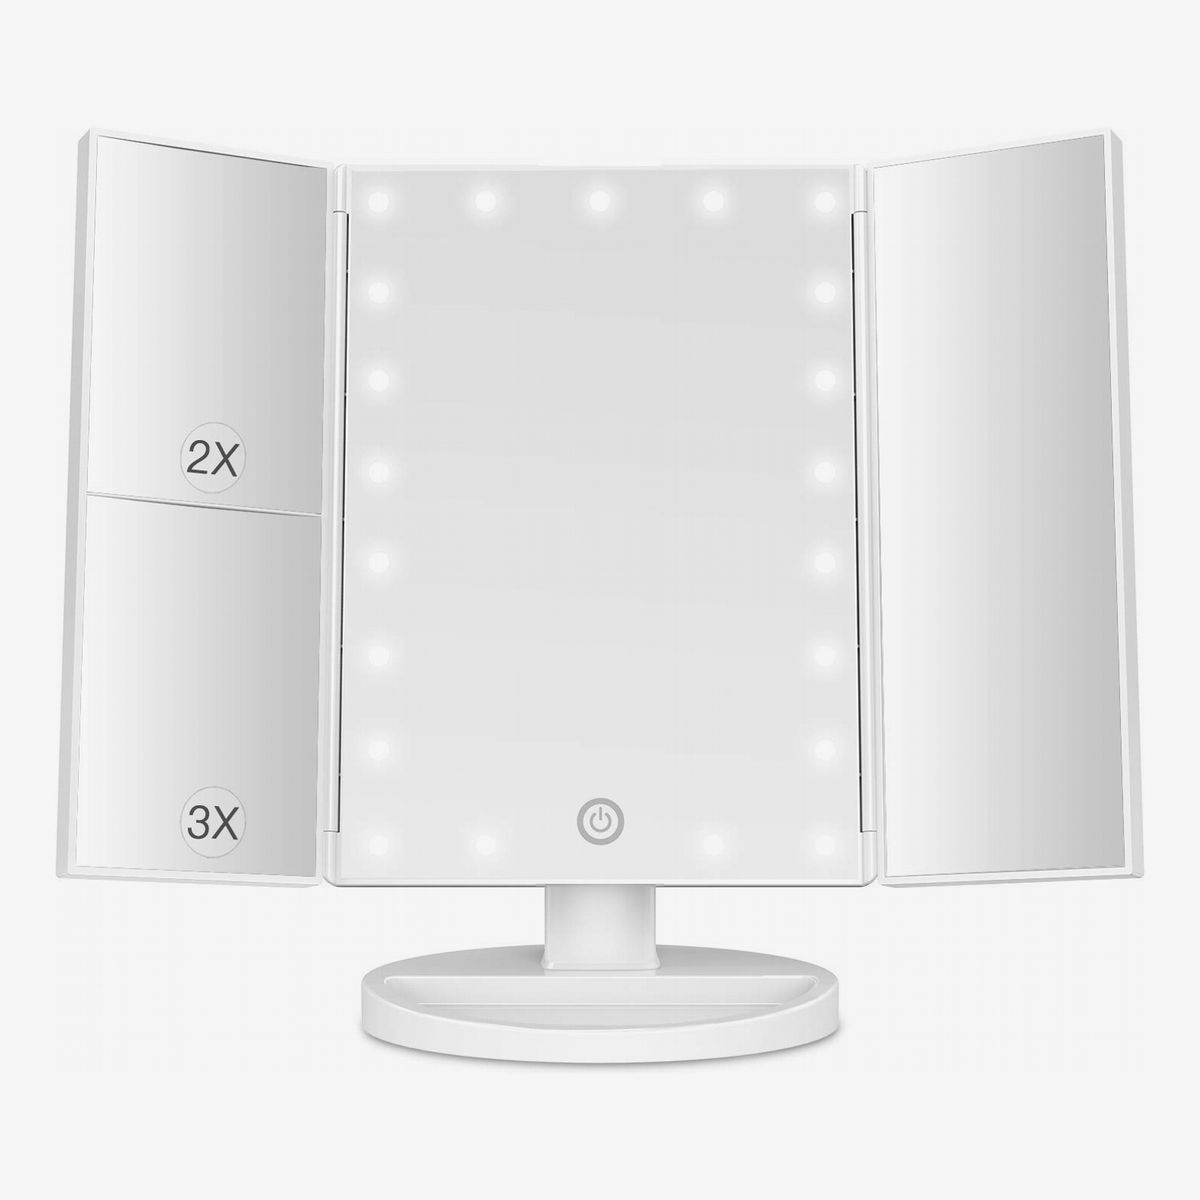 13 Best Lighted Makeup Mirrors 2021 The Strategist New York Magazine